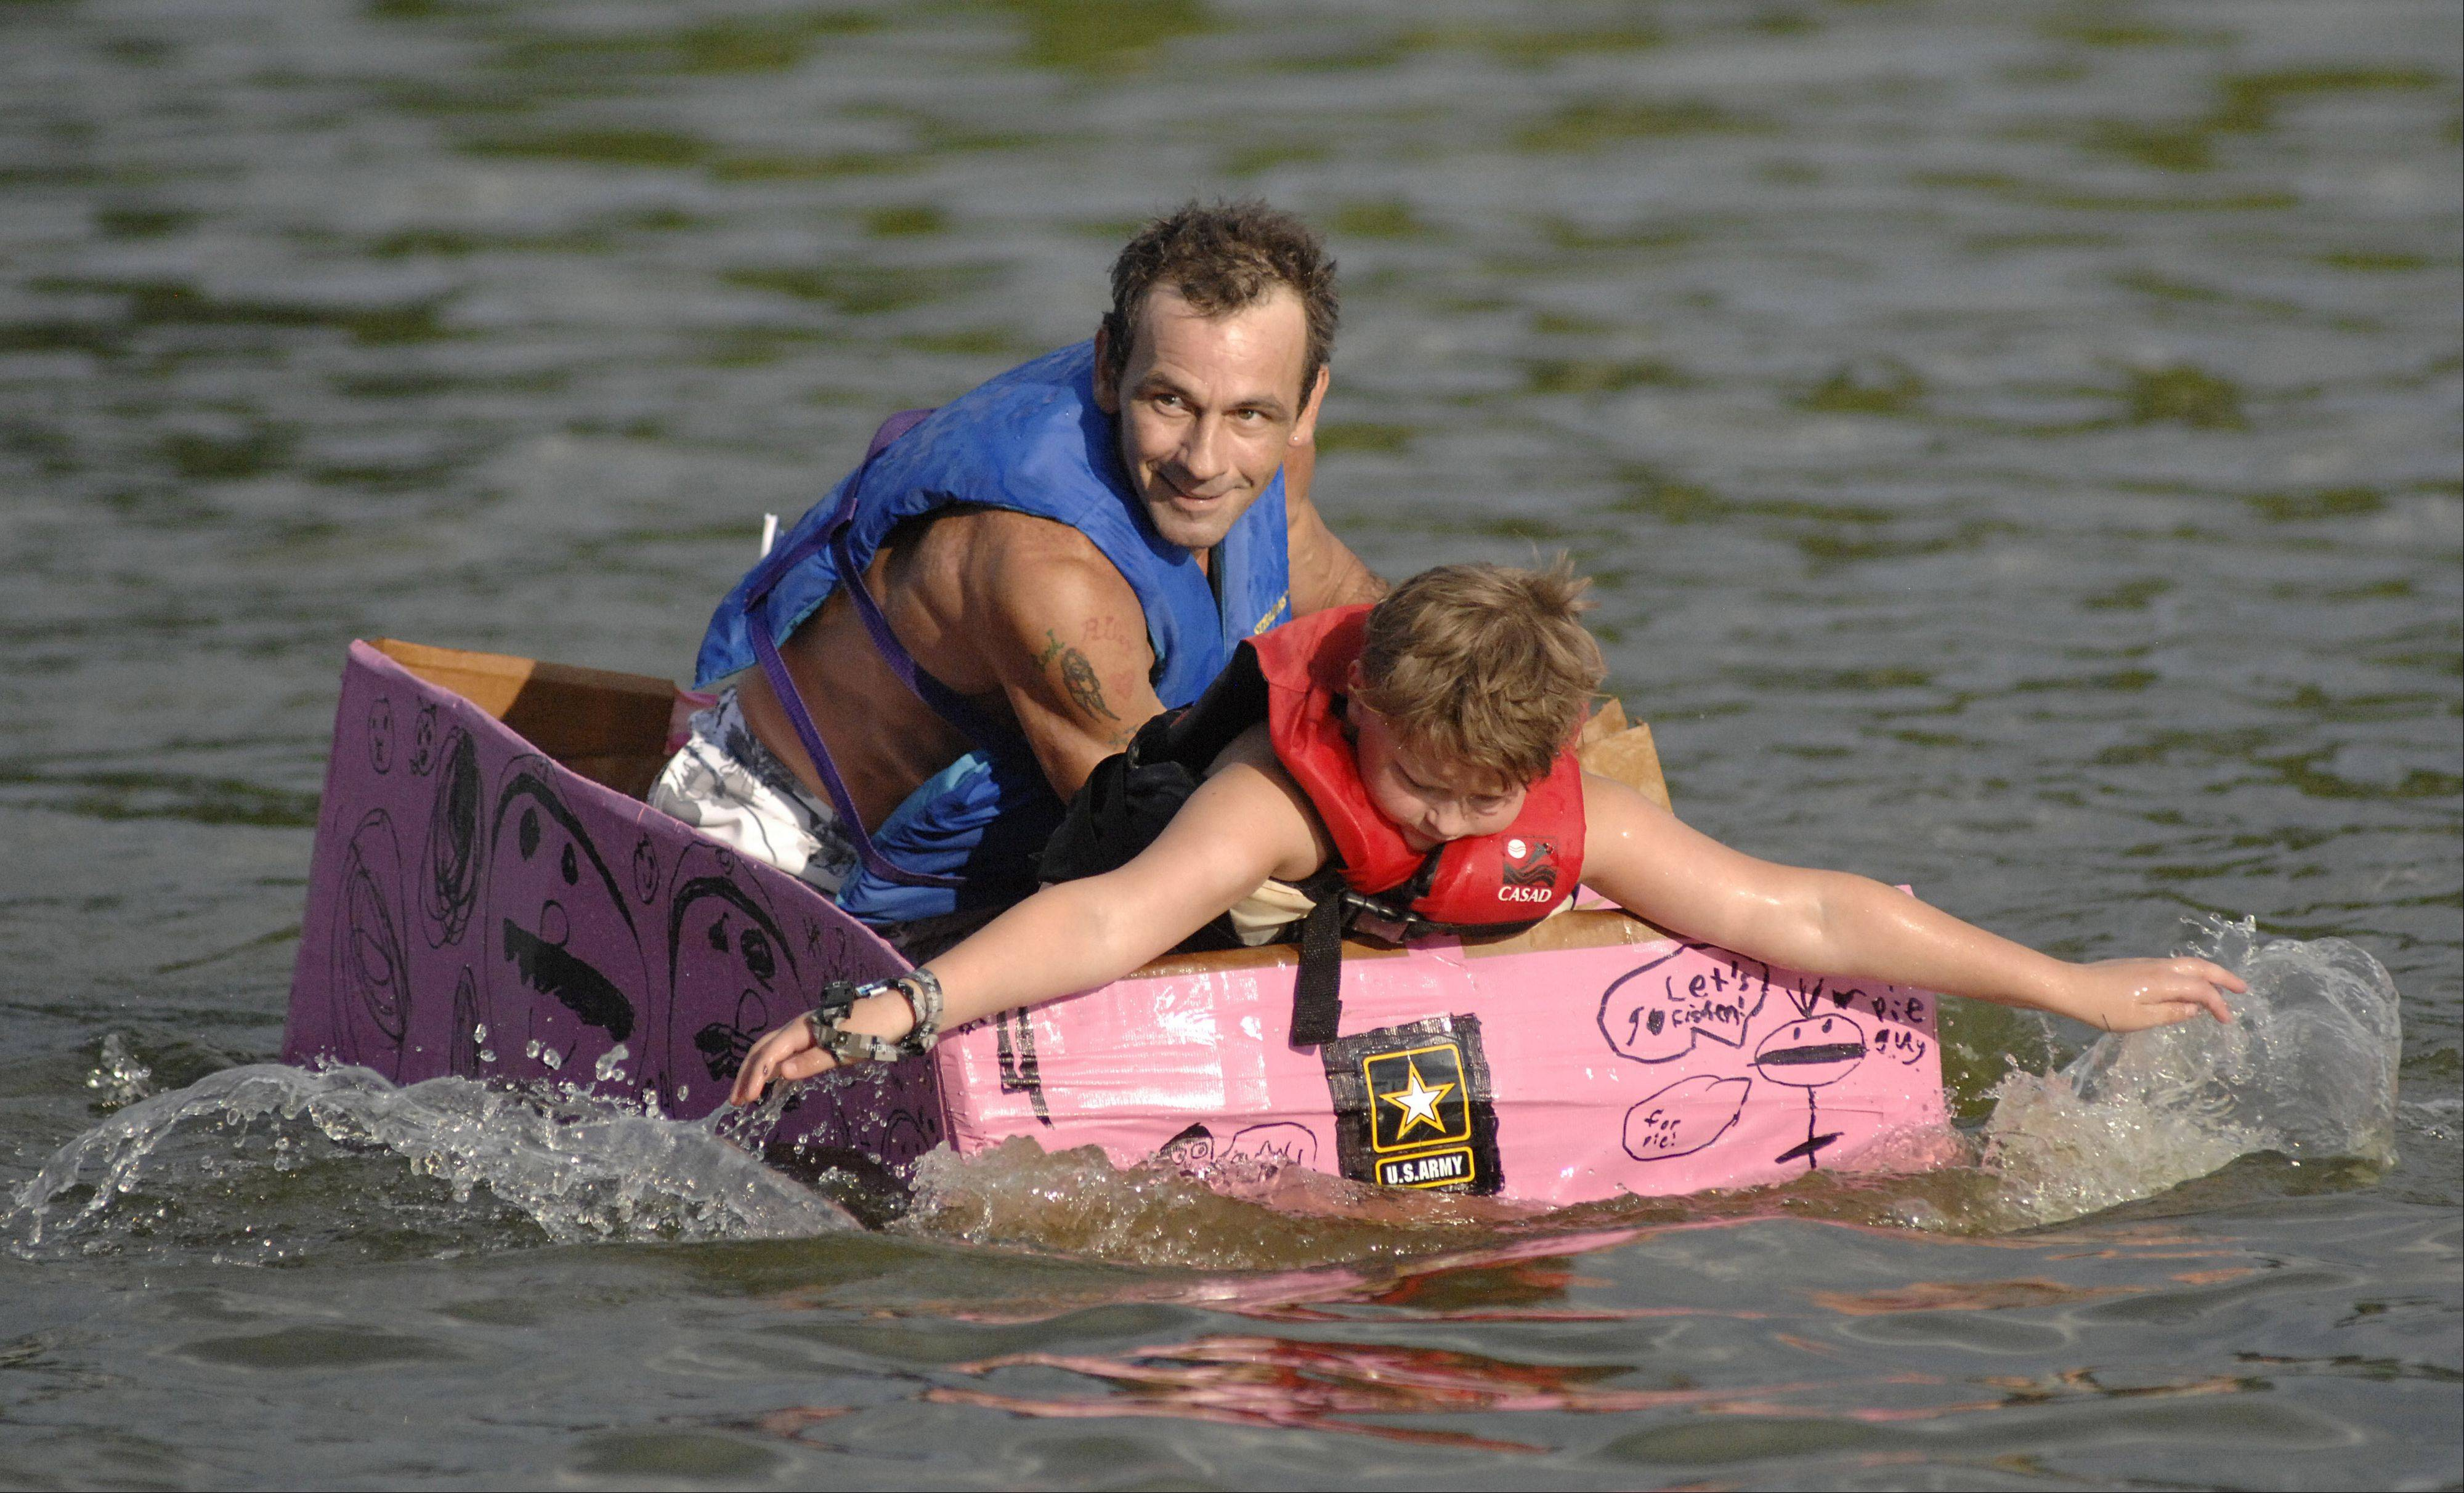 Anthony Porreca, left, helps out Jayden Zea, paddle in Jayden's entry into the Cardboard Boat Regatta at last year's Algonquin Founders' Days.